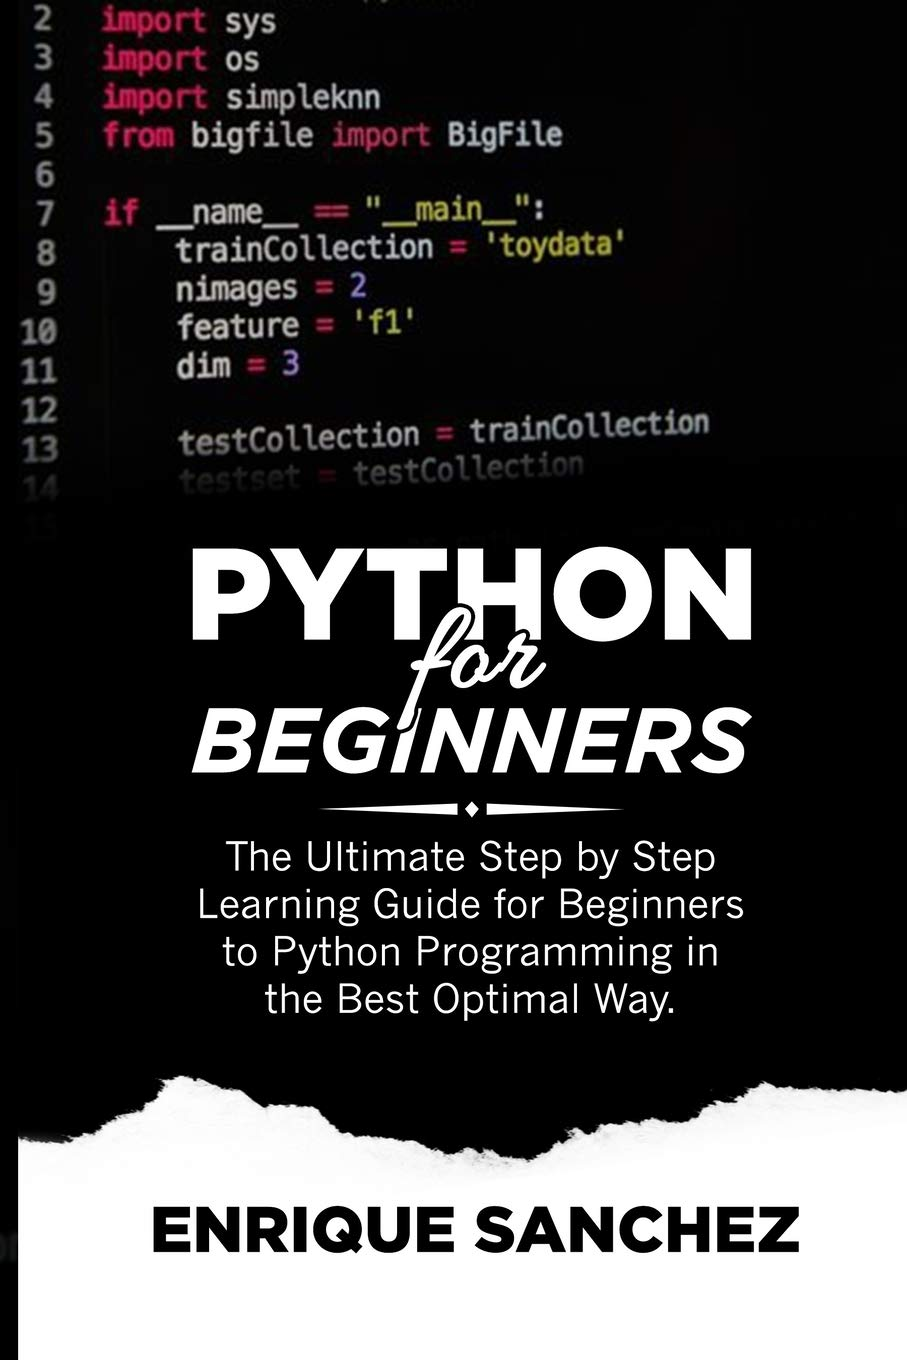 Python for Beginners: The Ultimate Step by Step Learning